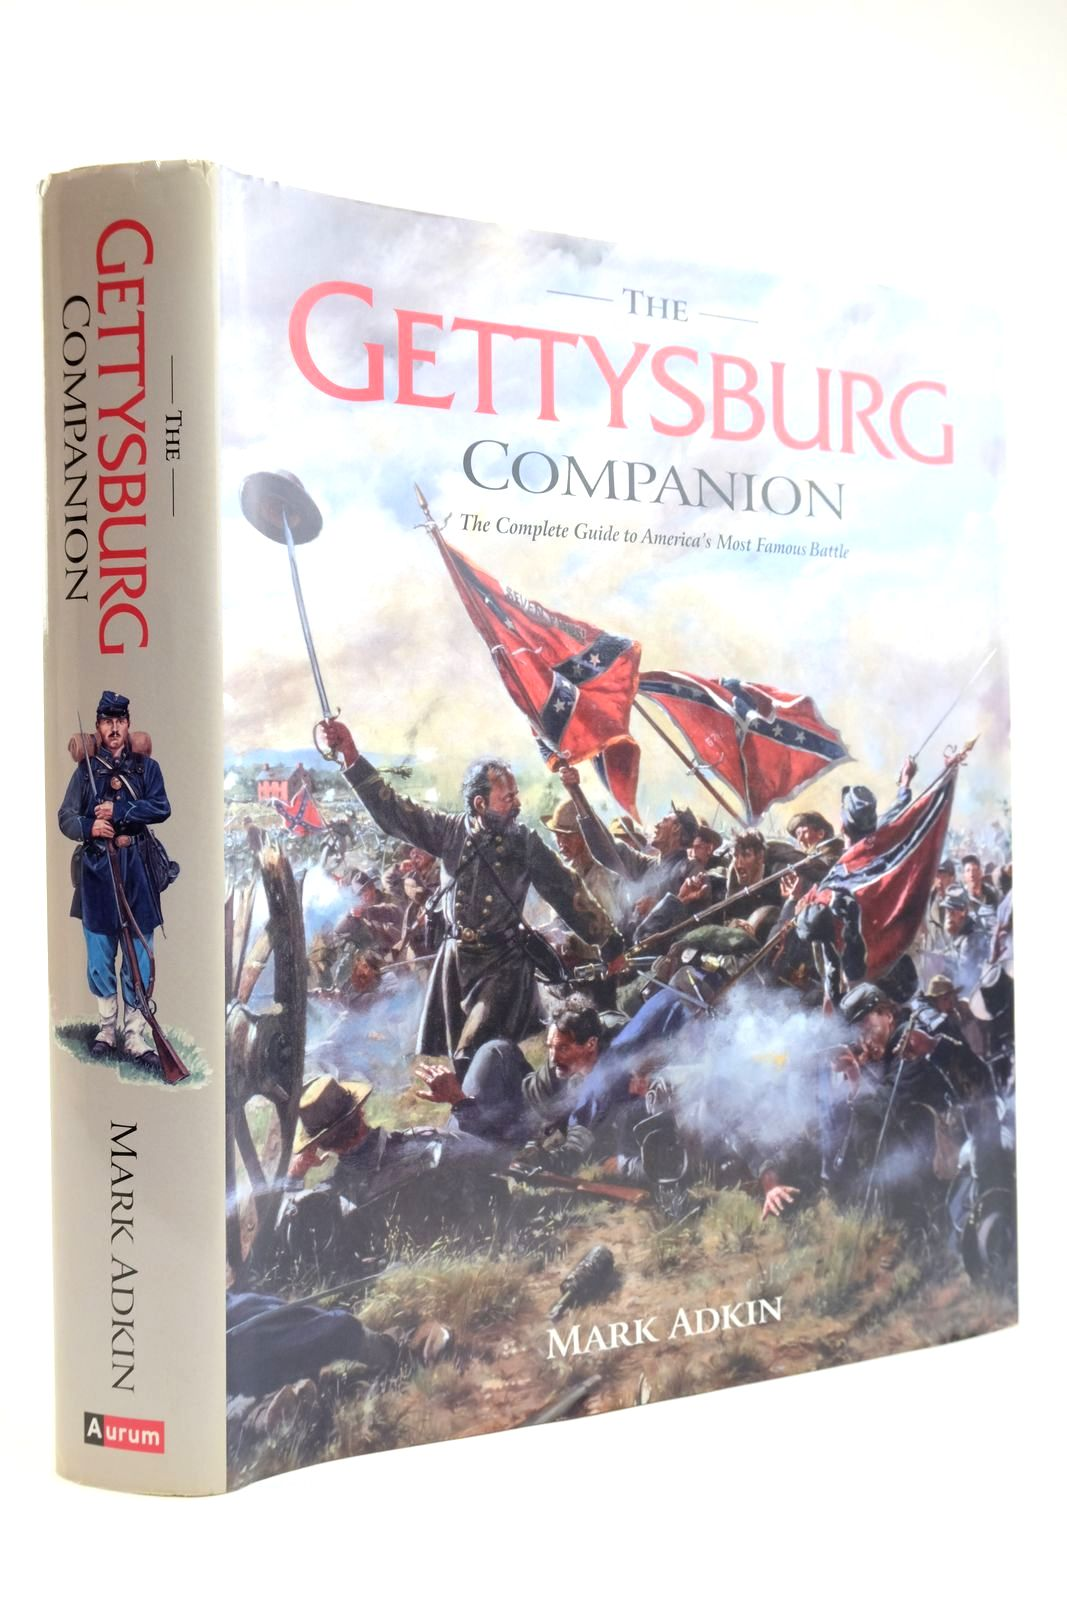 Photo of THE GETTYSBURG COMPANION THE COMPLETE GUIDE TO AMERICA'S MOST FAMOUS BATTLE- Stock Number: 2133486